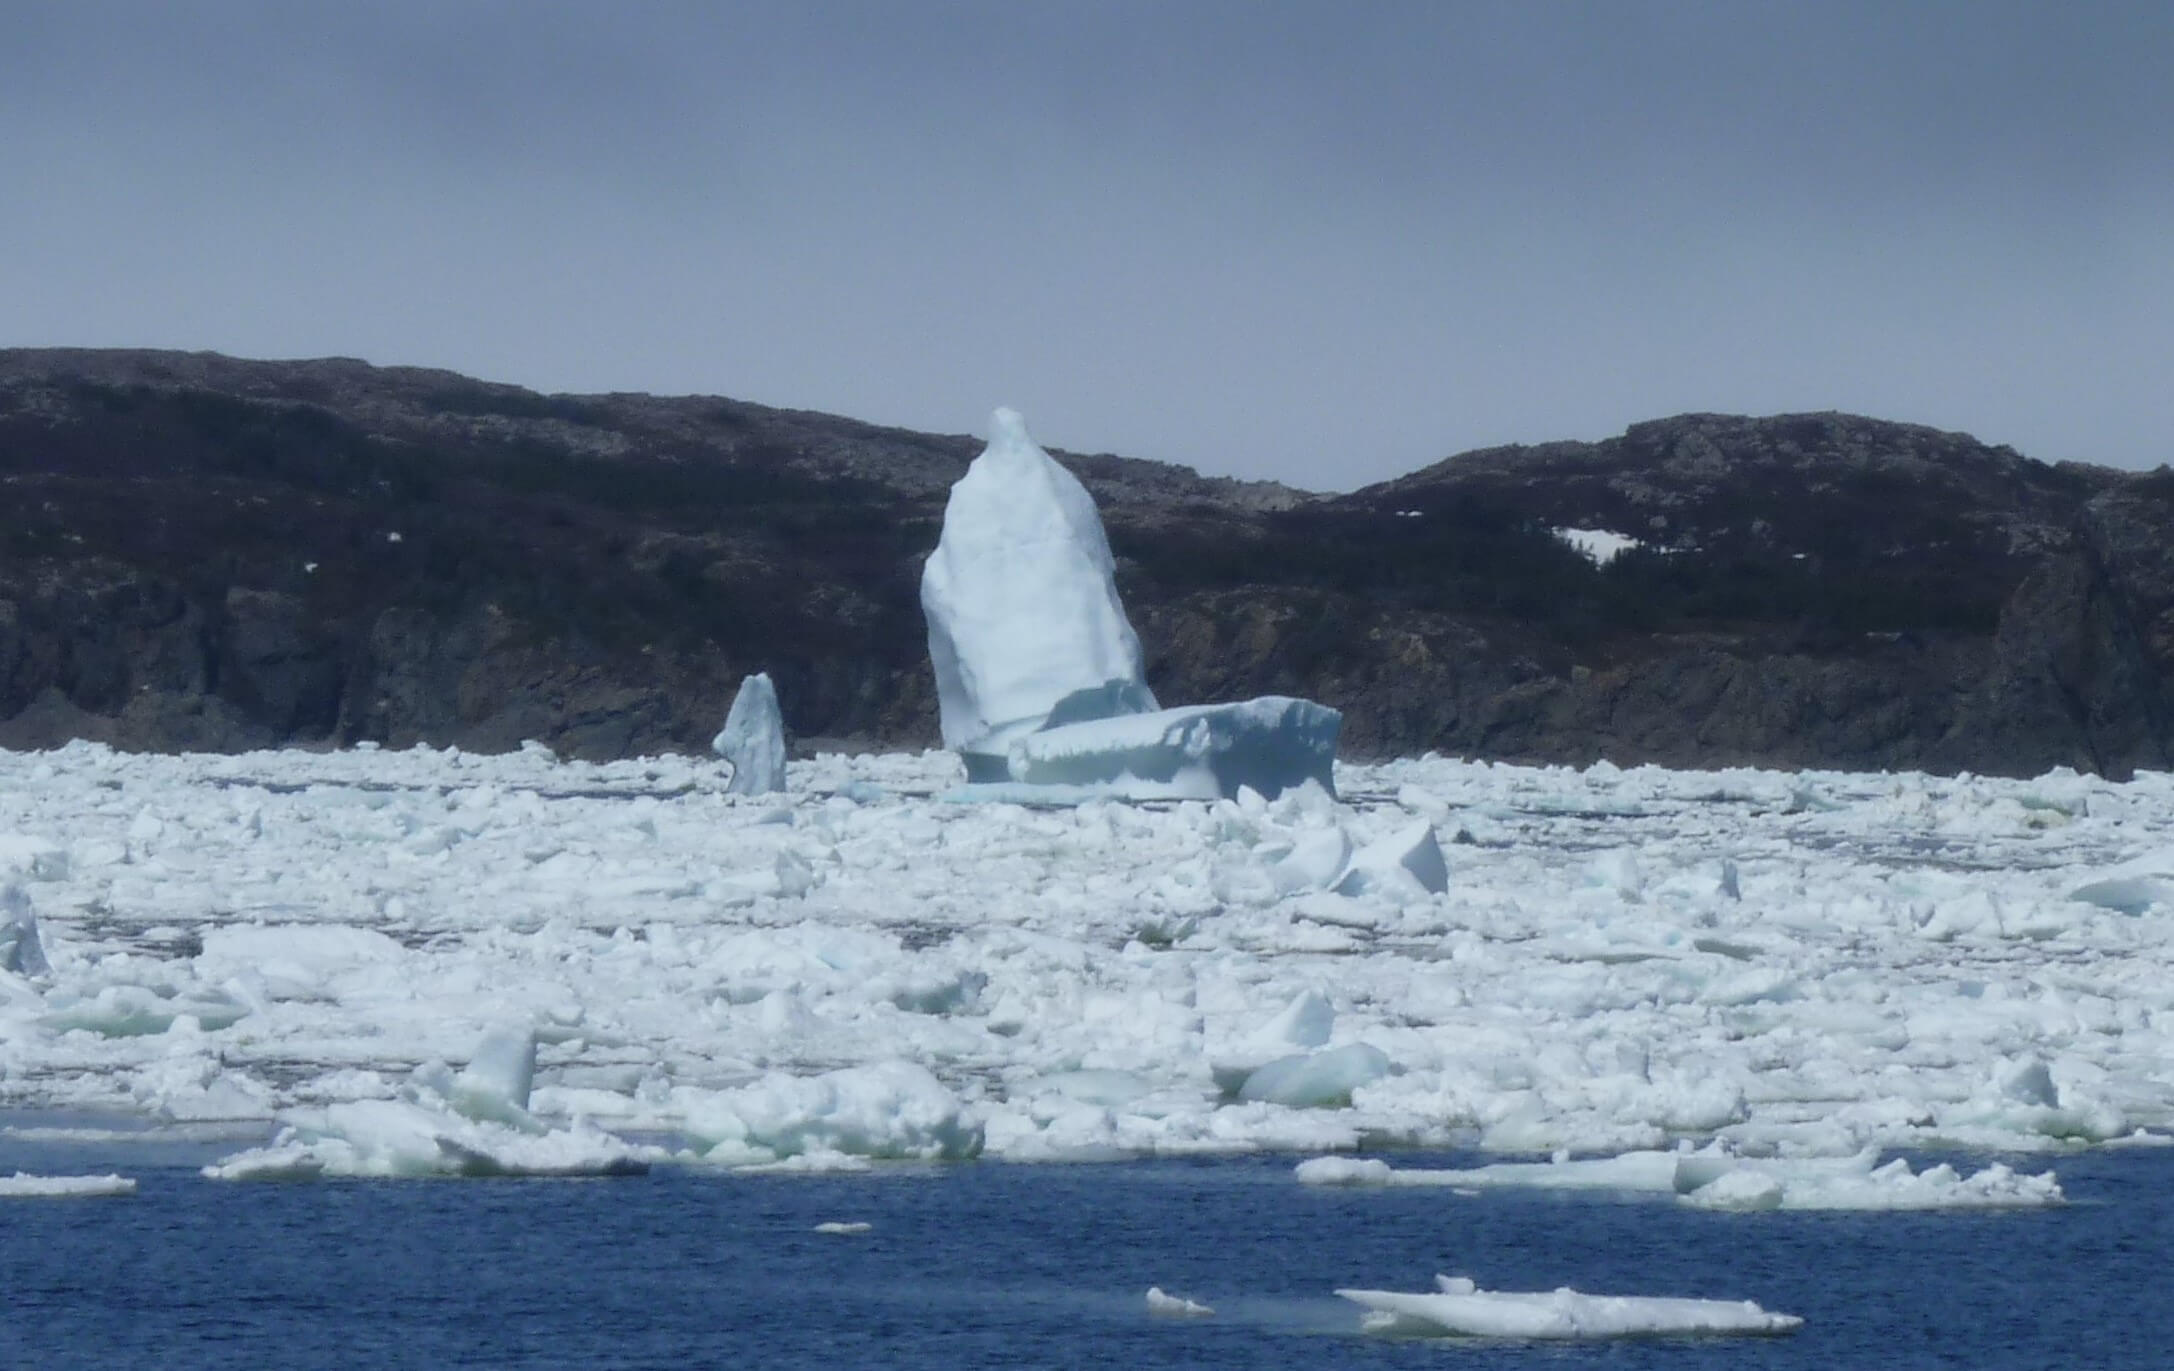 An iceberg in a bay that reaches higher than the hills on the opposite side of the bay.